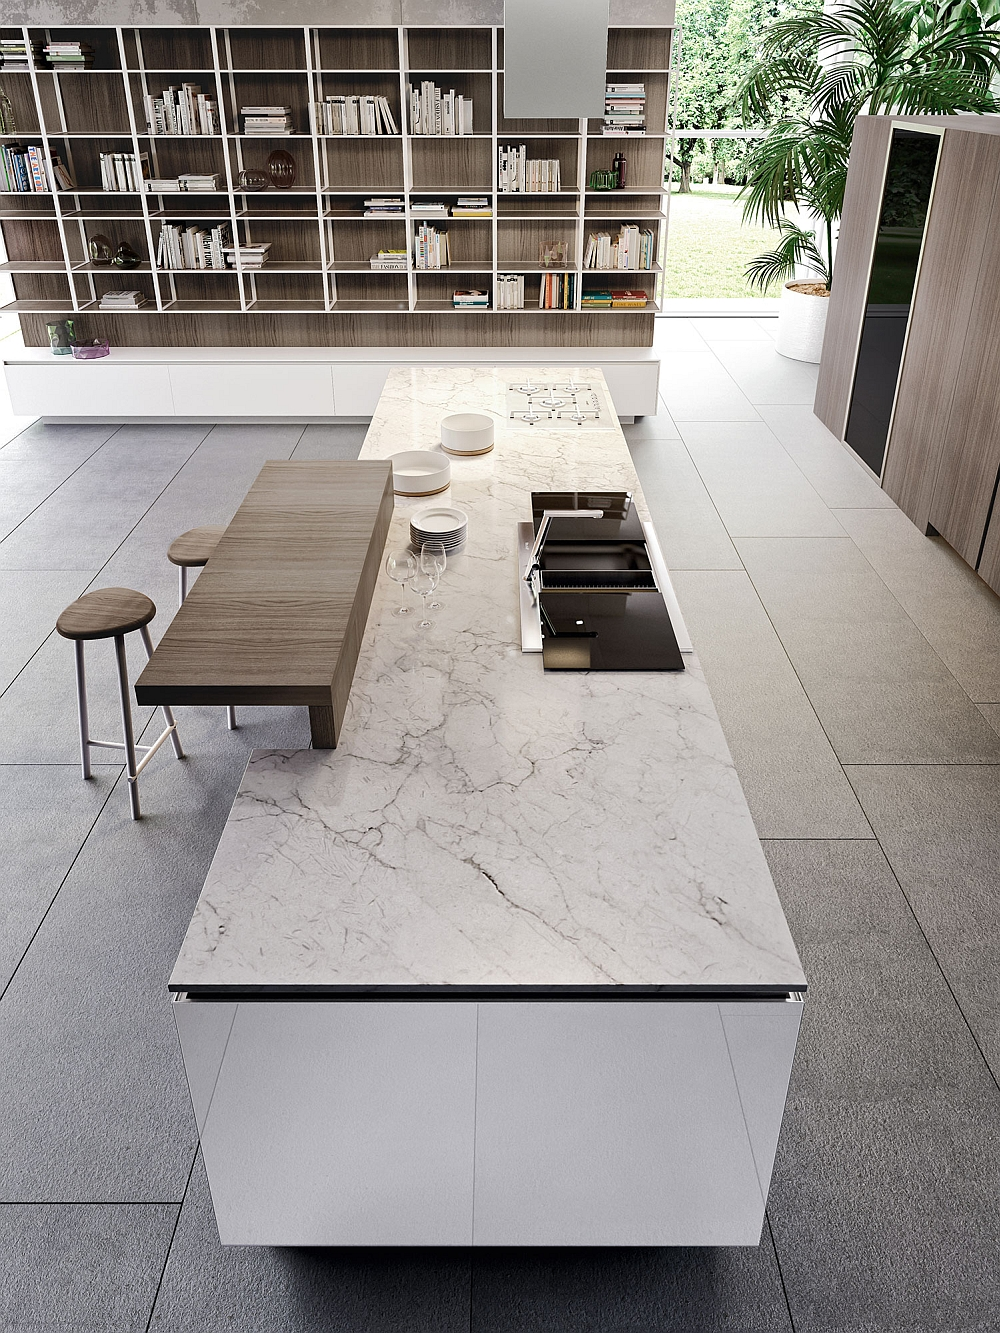 Fabulous Italian kitchen with state-of-the-art design